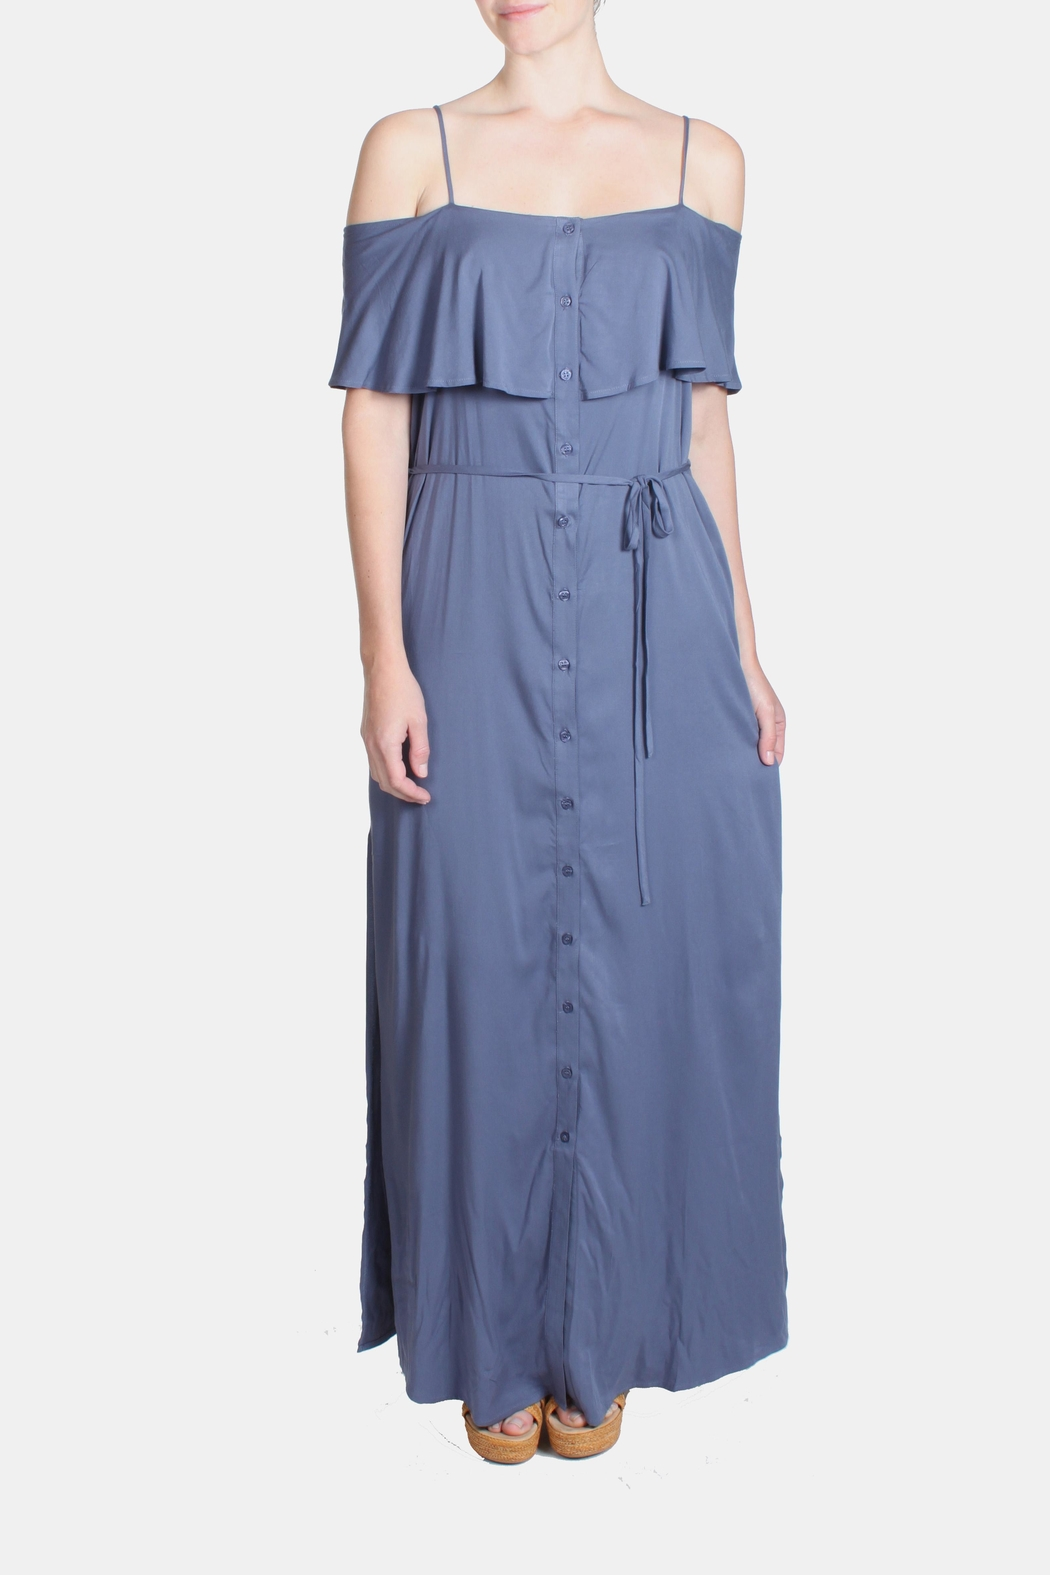 Ya los angeles blue maxi dress